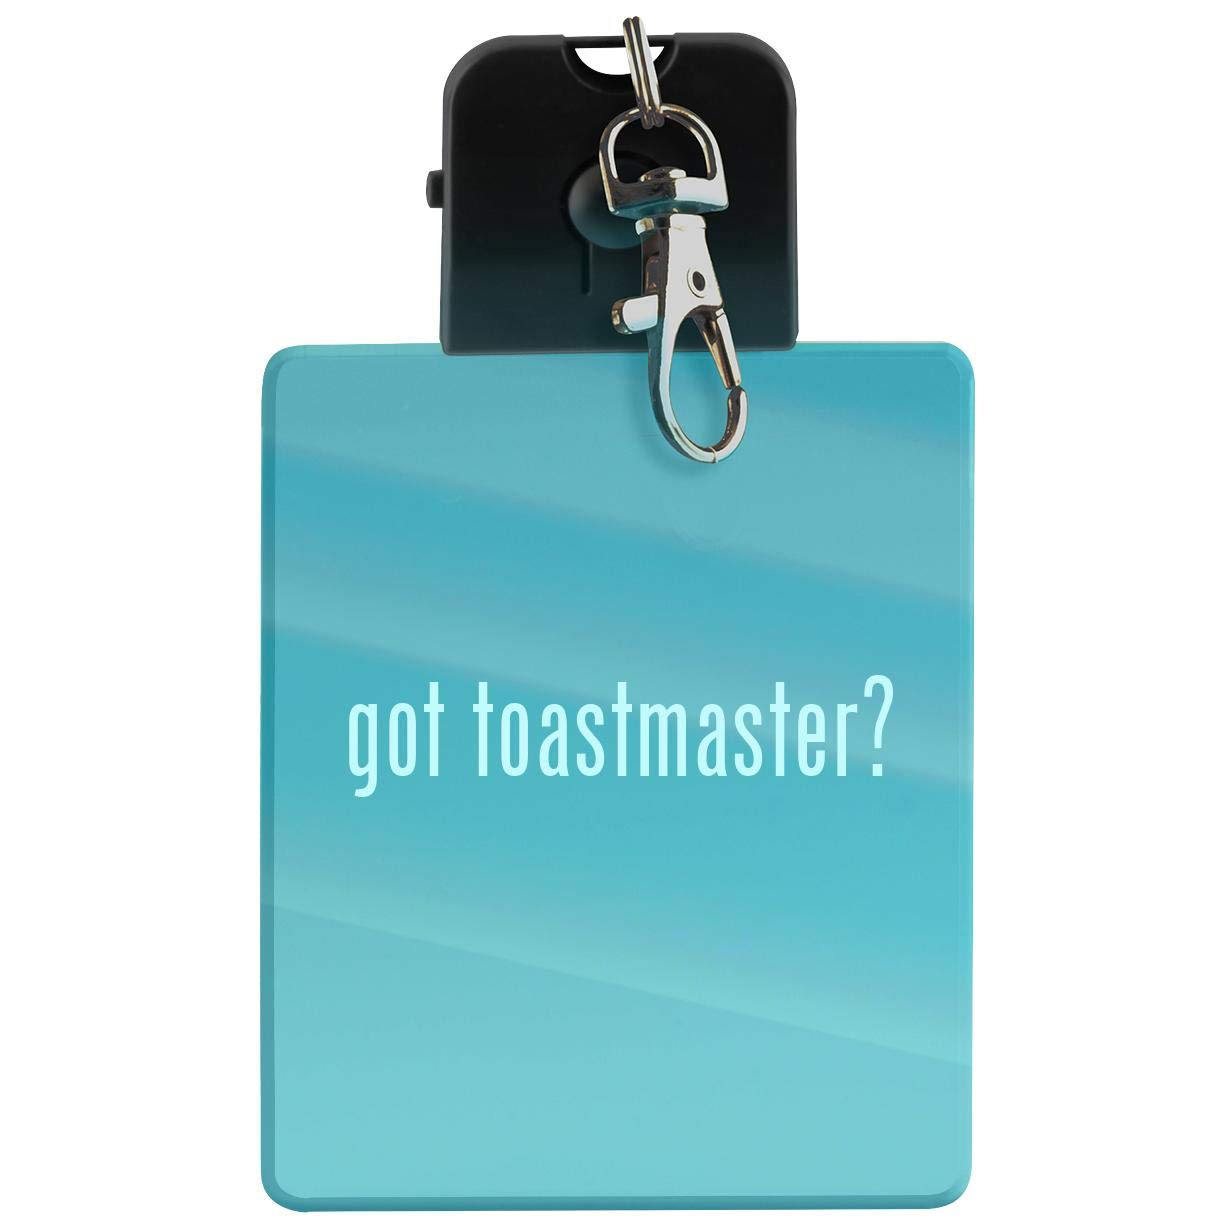 got toastmaster? - LED Key Chain with Easy Clasp